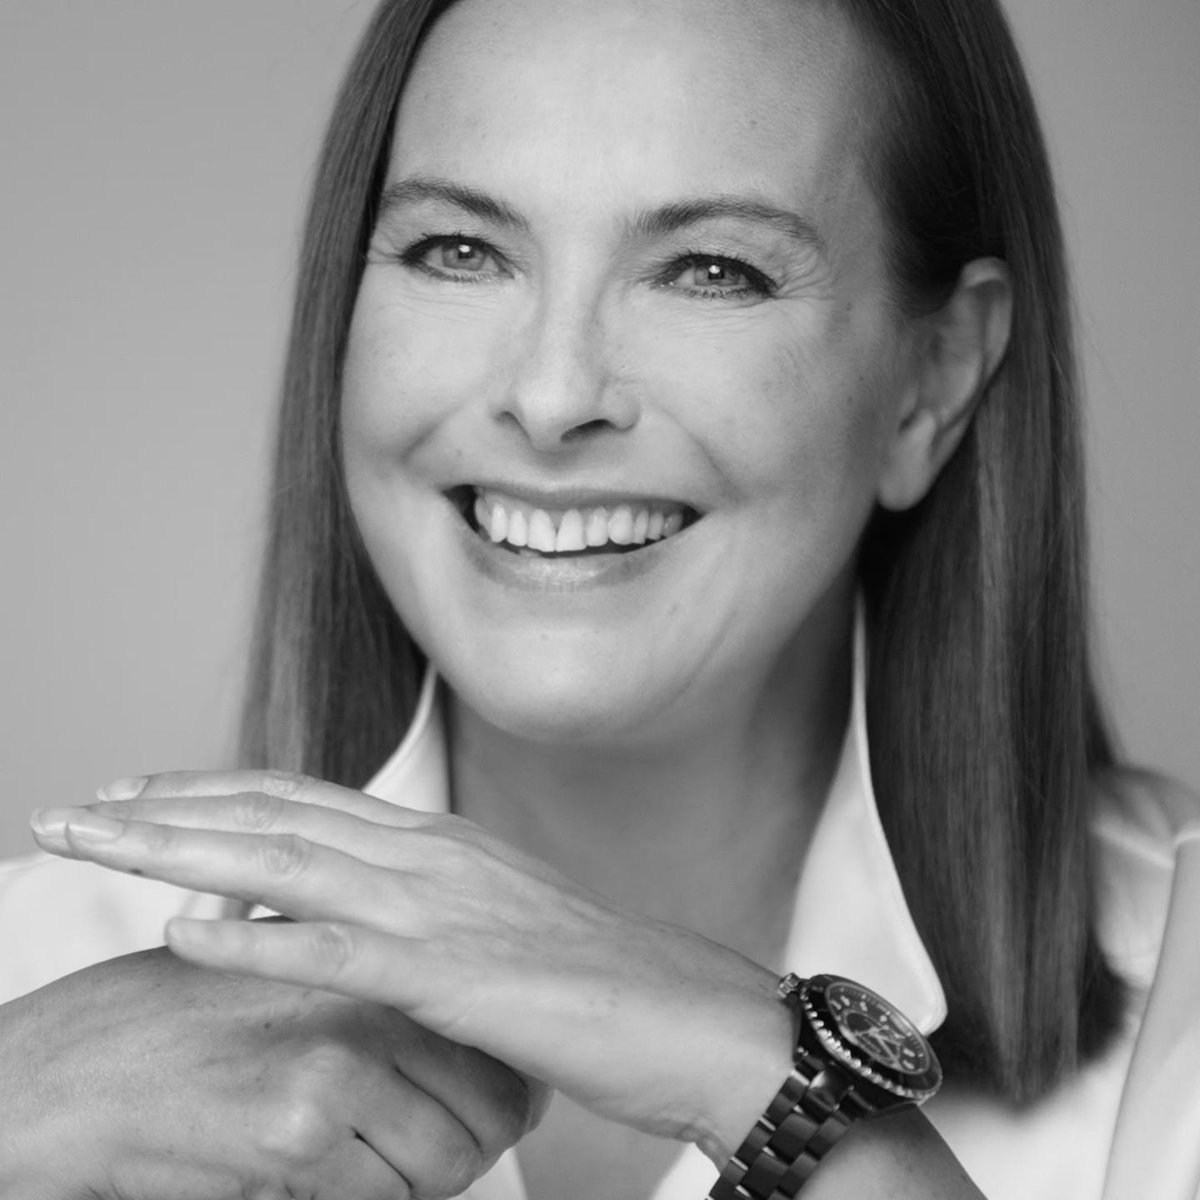 """""""I love the really early morning, when the day begins."""" Carole Bouquet wears the black ceramic version of the new J12 watch. Discover on http://chanel.com/-j12CaroleBouquet…#TheNewJ12 #CHANELWatches #ItsAllAboutSeconds"""